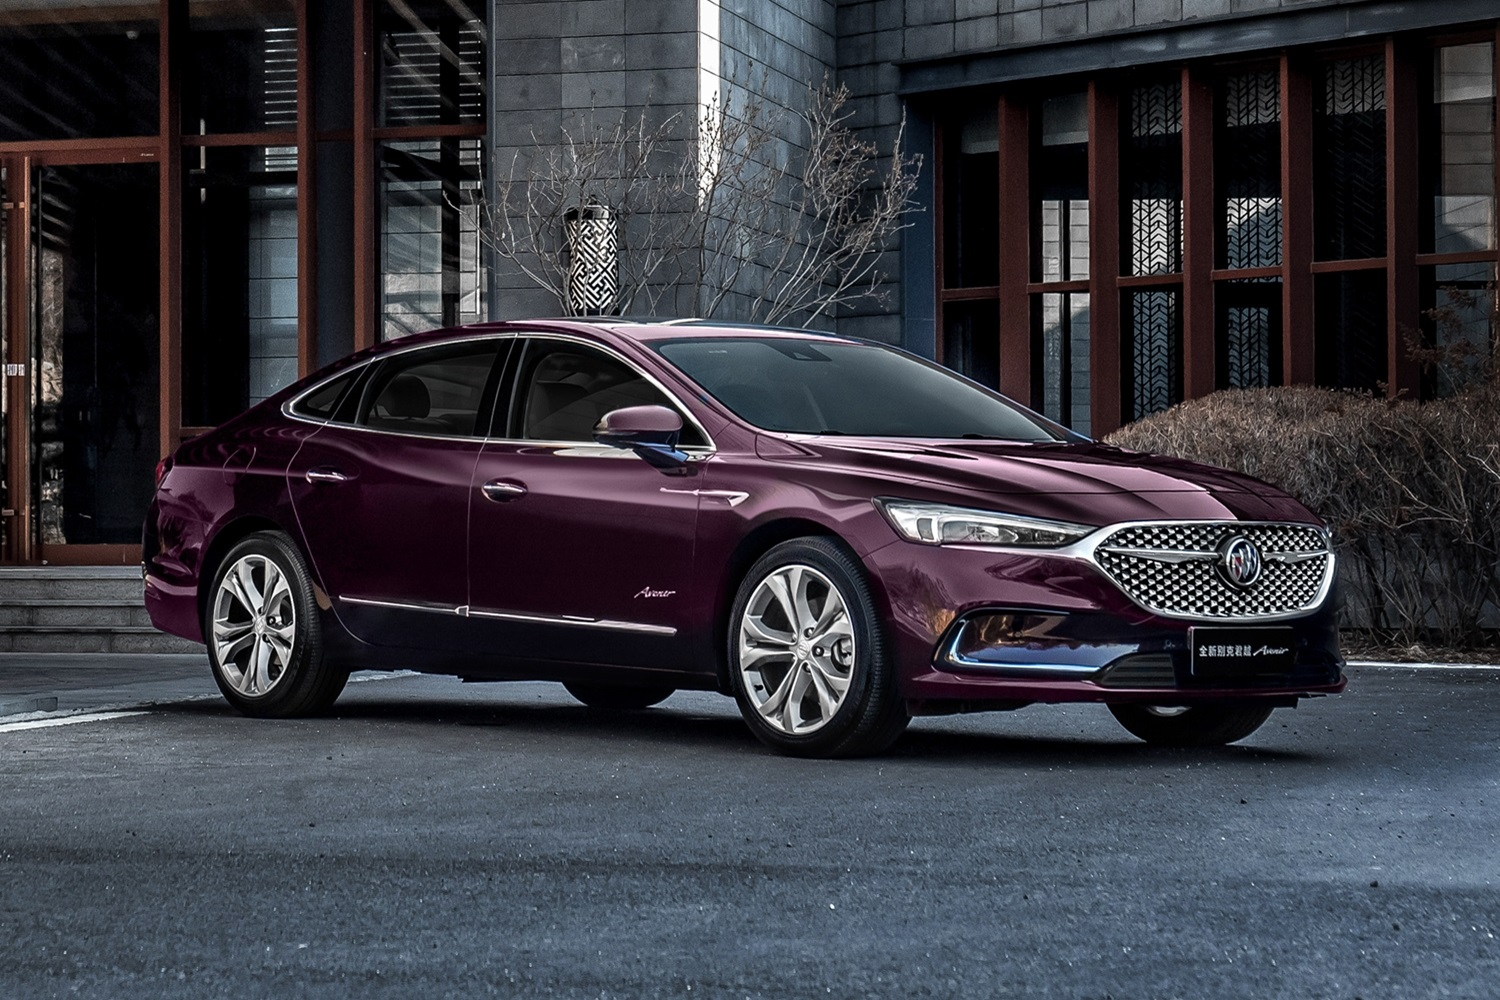 2021 Buick Lacrosse Gets More Refined Than Ever | Gm Authority 2021 Buick Lacrosse Price, Gas Mileage, Horsepower